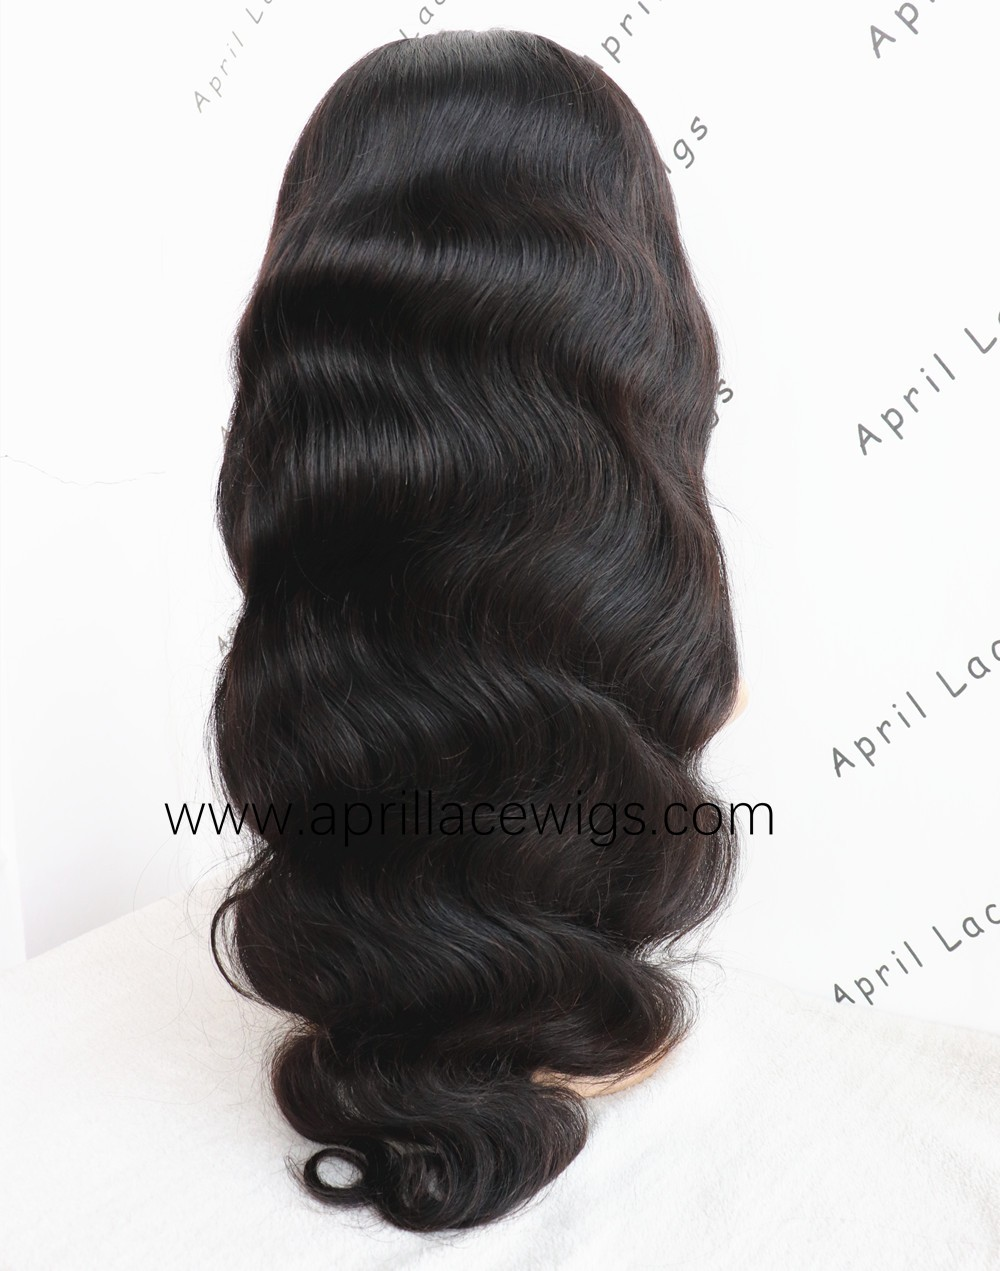 body wave 360 wig Brazilian virgin ponytail and bun